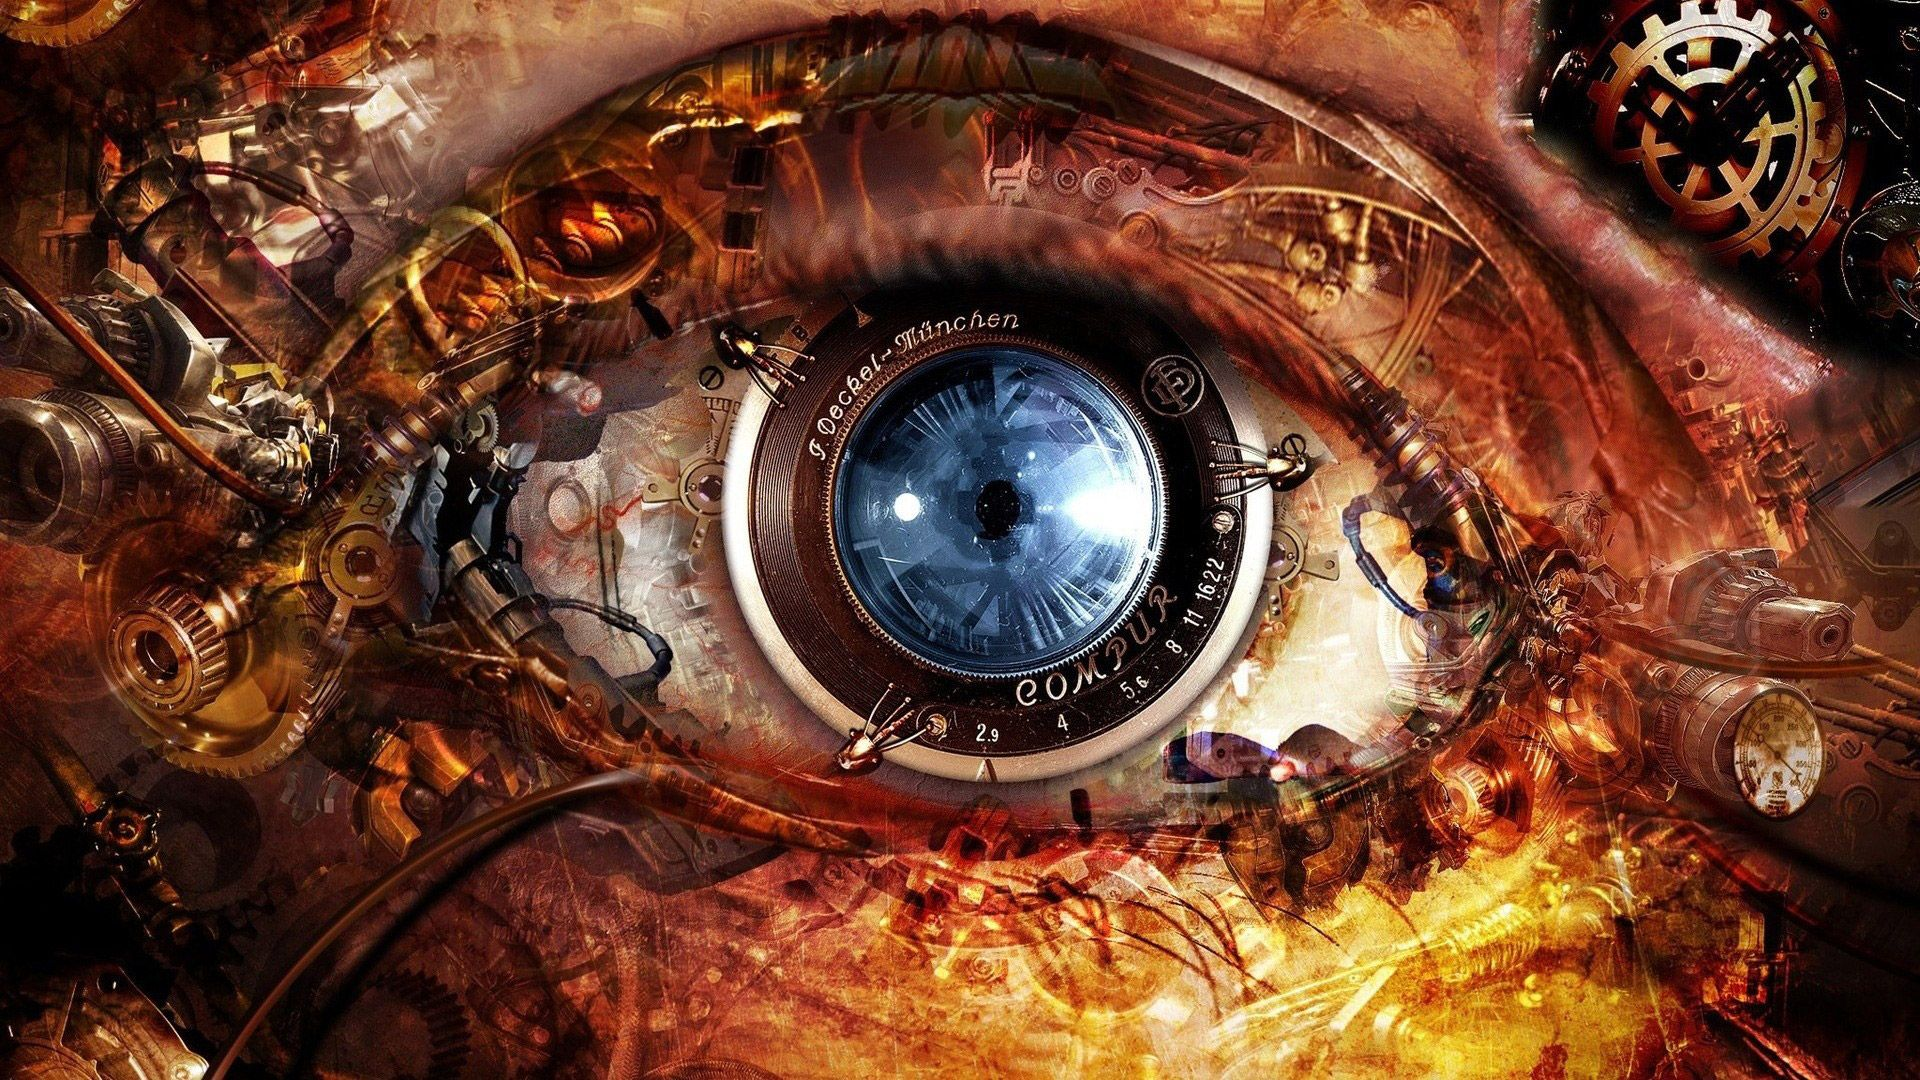 Wallpaper For Computer Free Download Kindle Fire Hd Wallpapers Steampunk Wallpaper Steampunk Eye Eyes Wallpaper